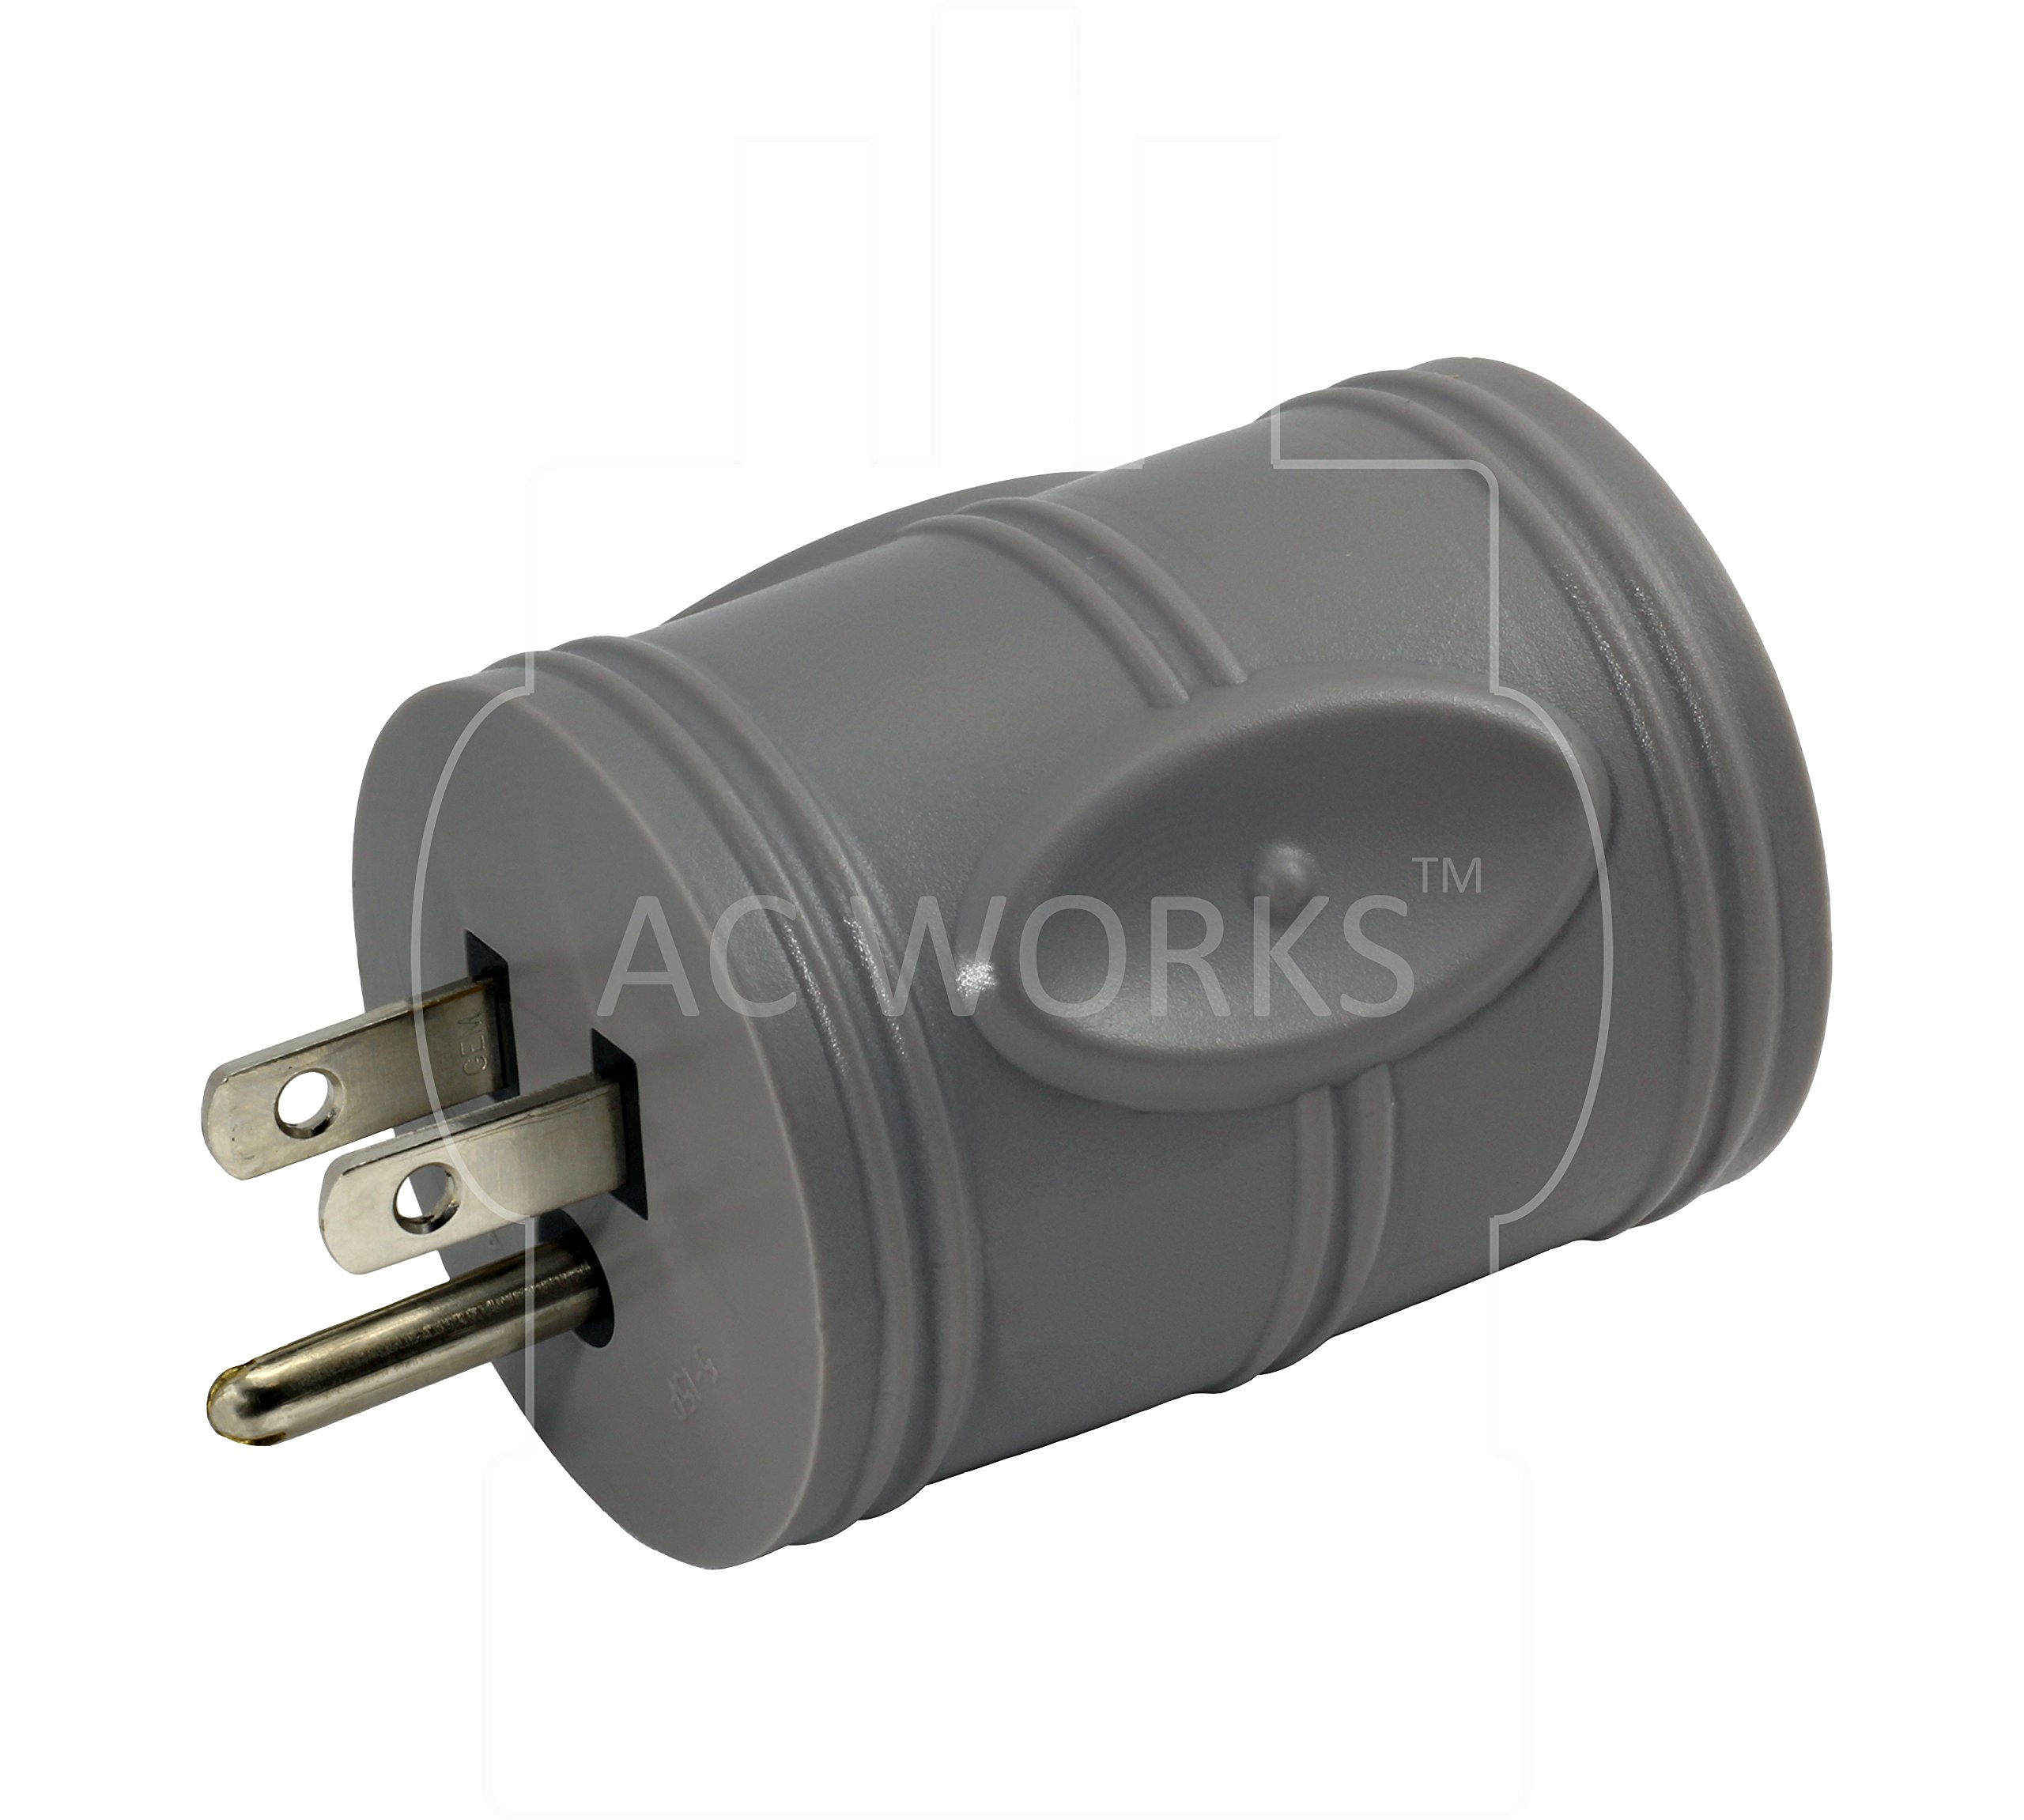 AC WORKS [EV515L630] EVSE Upgrade Electric Vehicle Charging Adapter 15Amp Household Plug to L6-30R Female Connector by AC WORKS (Image #3)